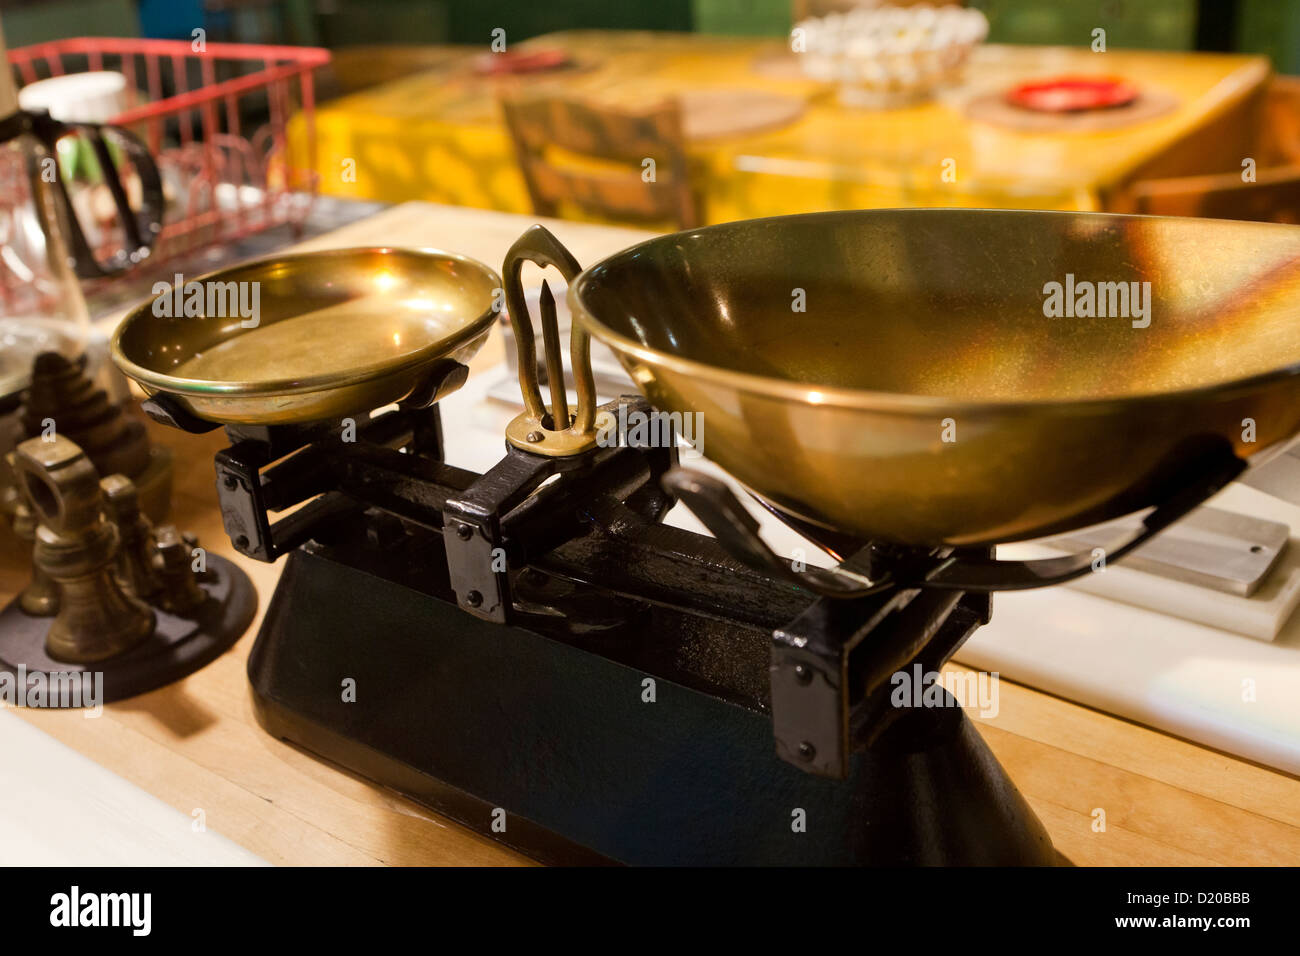 Antique balance scale in kitchen - Stock Image